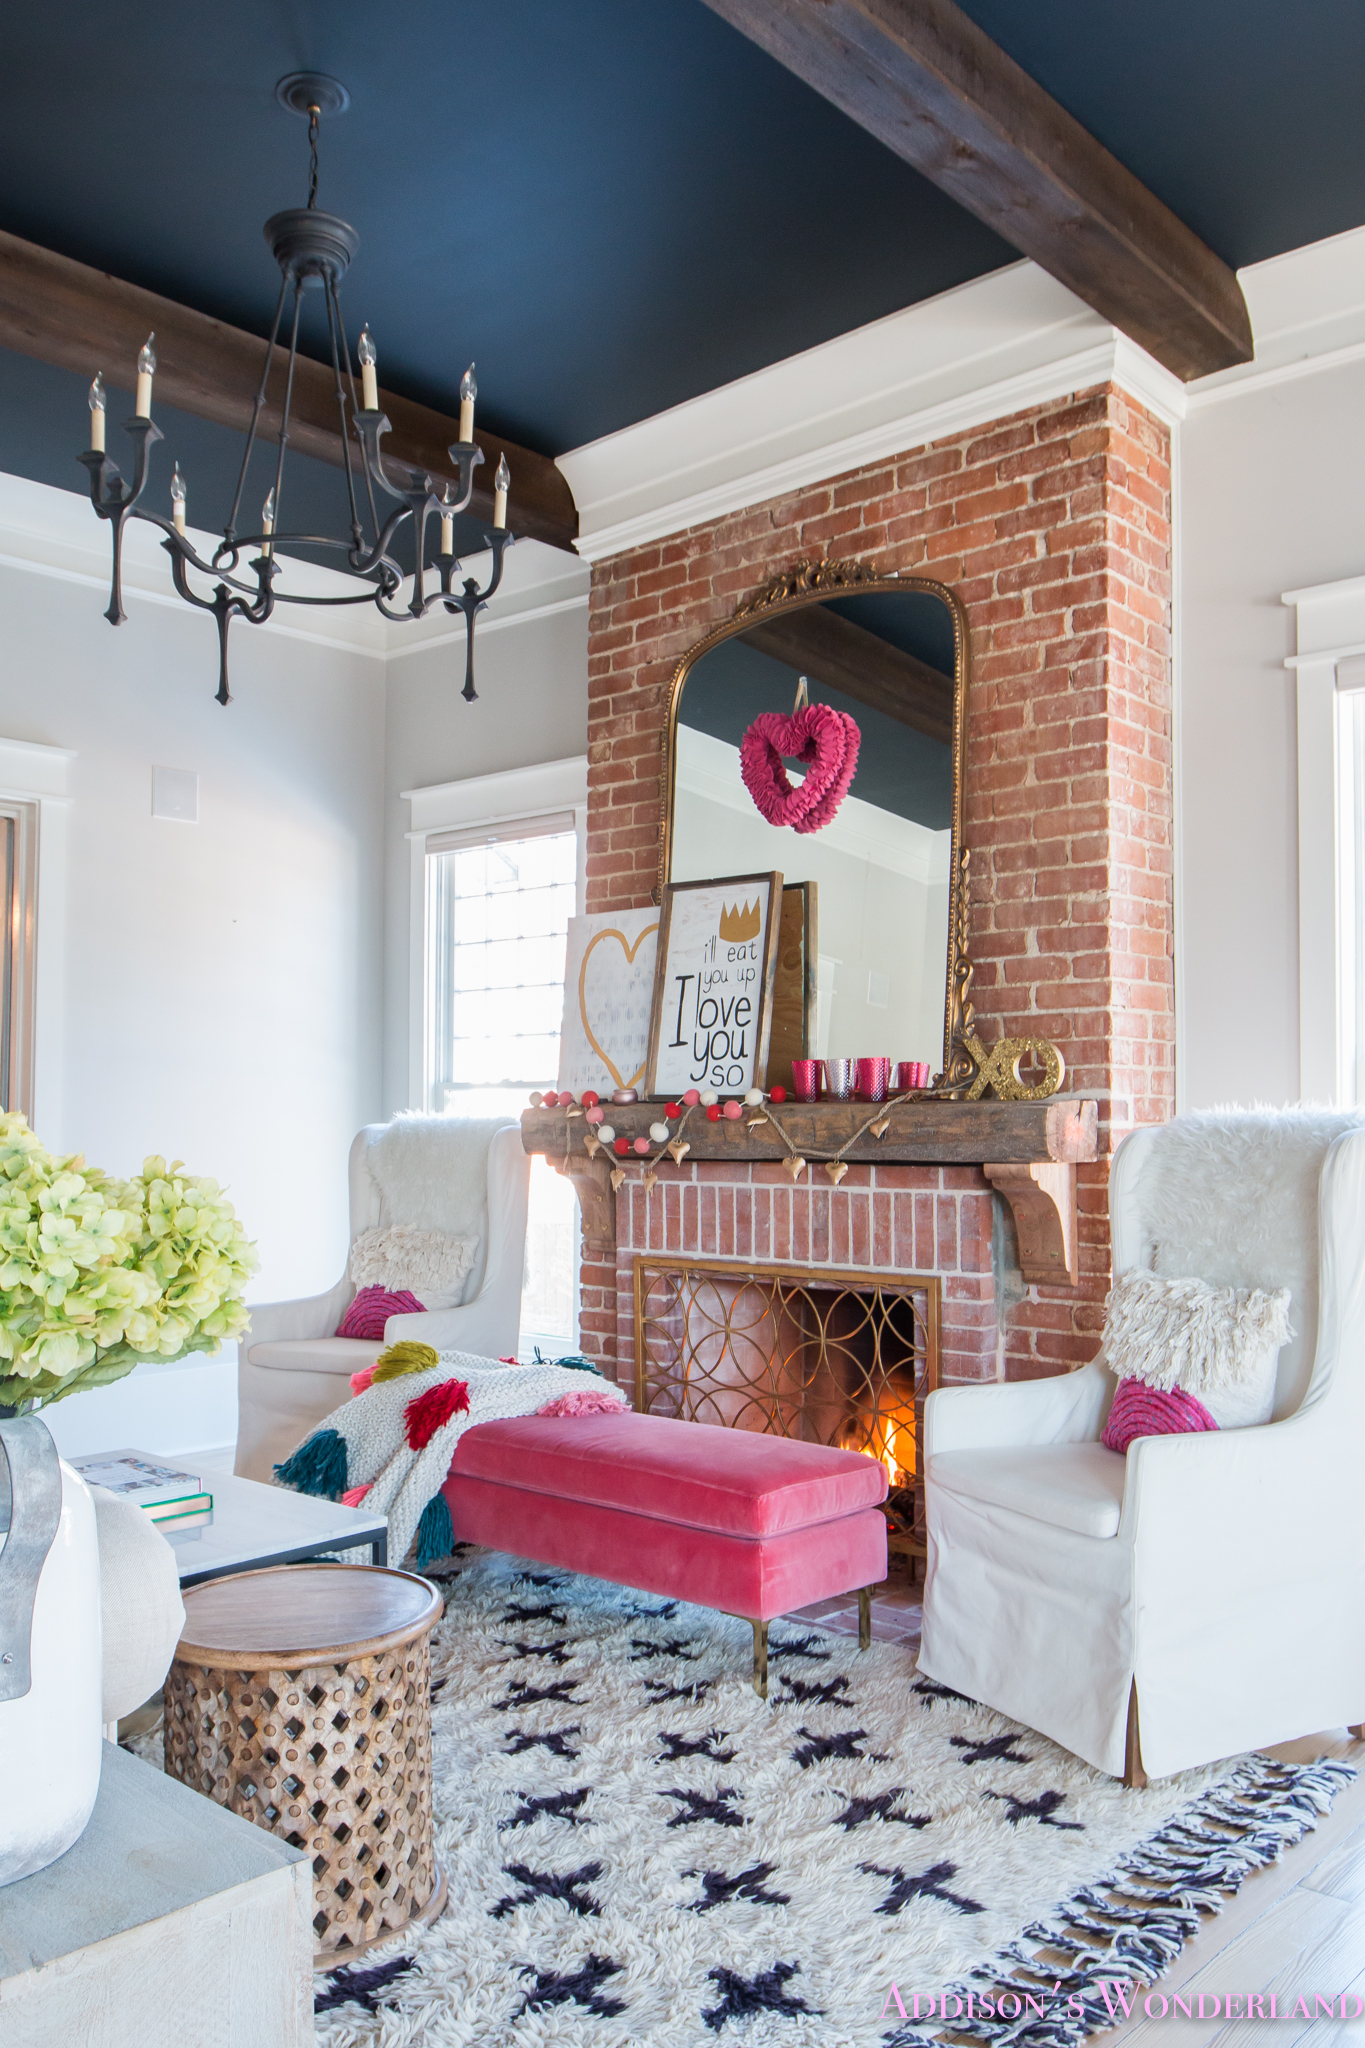 Room Design: Our Colorful, Whimsical & Elegant Valentine's Day Living